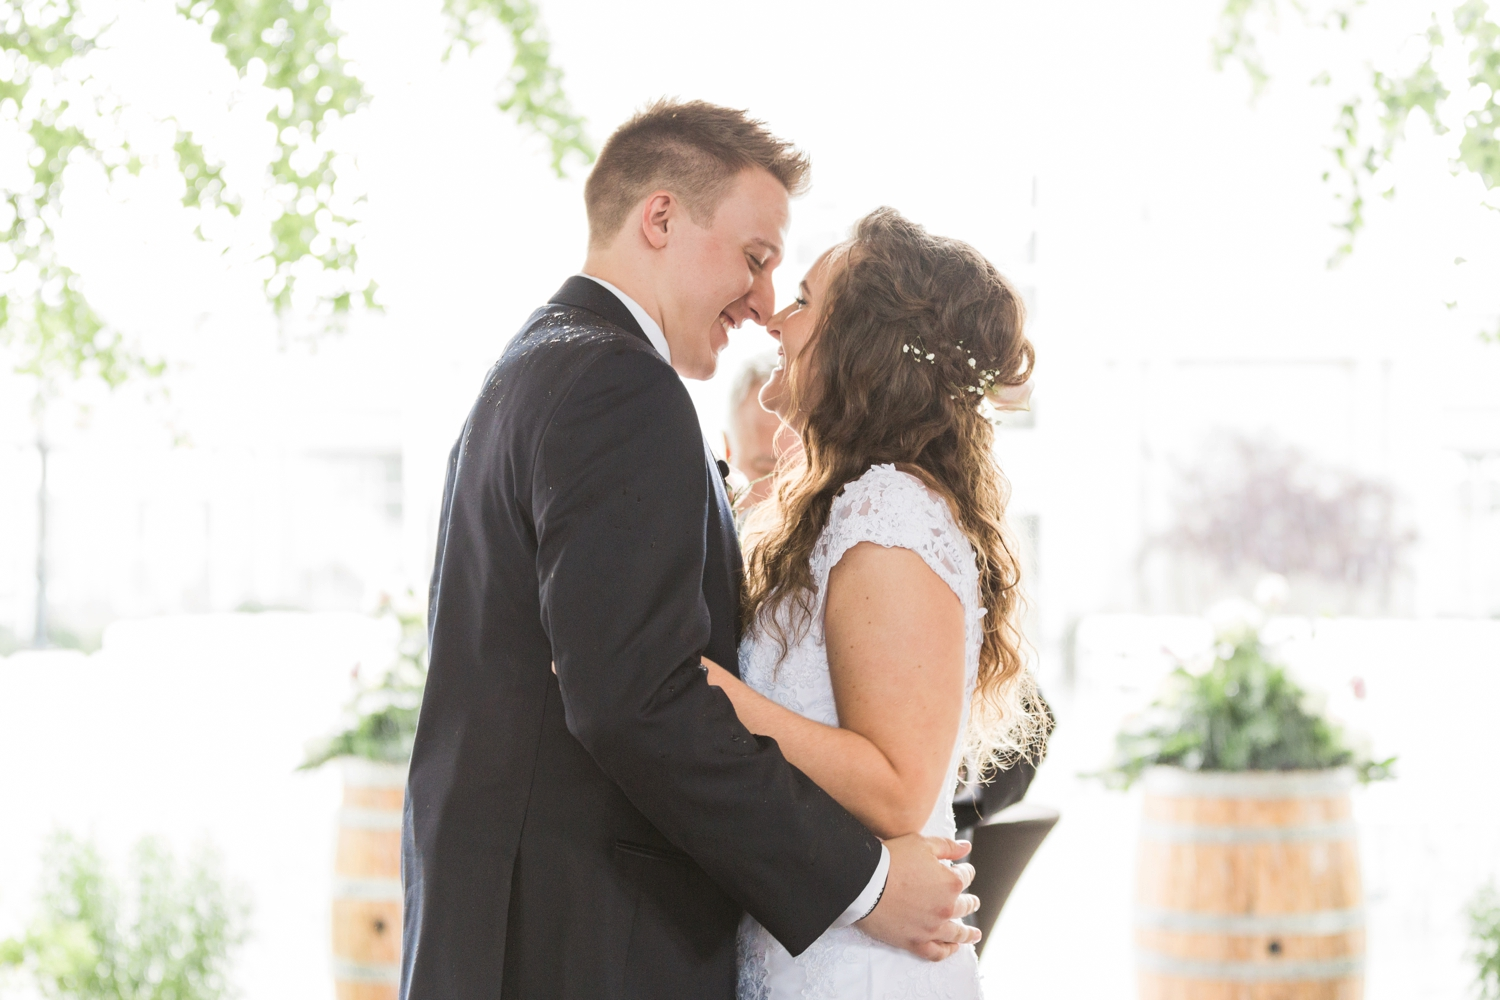 Community_Life_Center_Indianapolis_Indiana_Wedding_Photographer_Chloe_Luka_Photography_6969.jpg